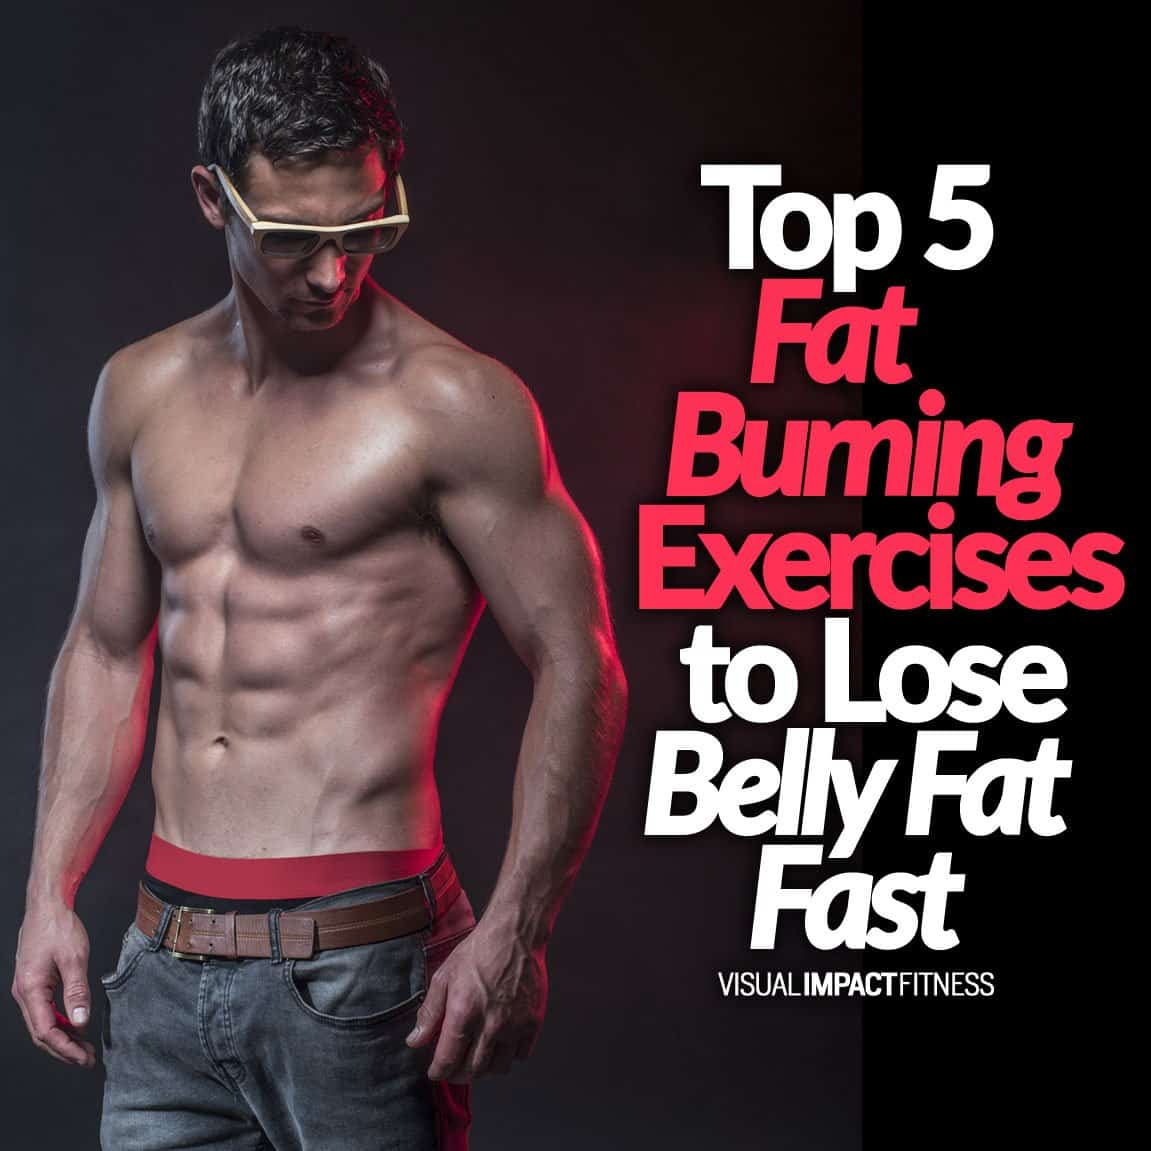 Top 5 Fat Burning Exercises to Lose Belly Fat Fast